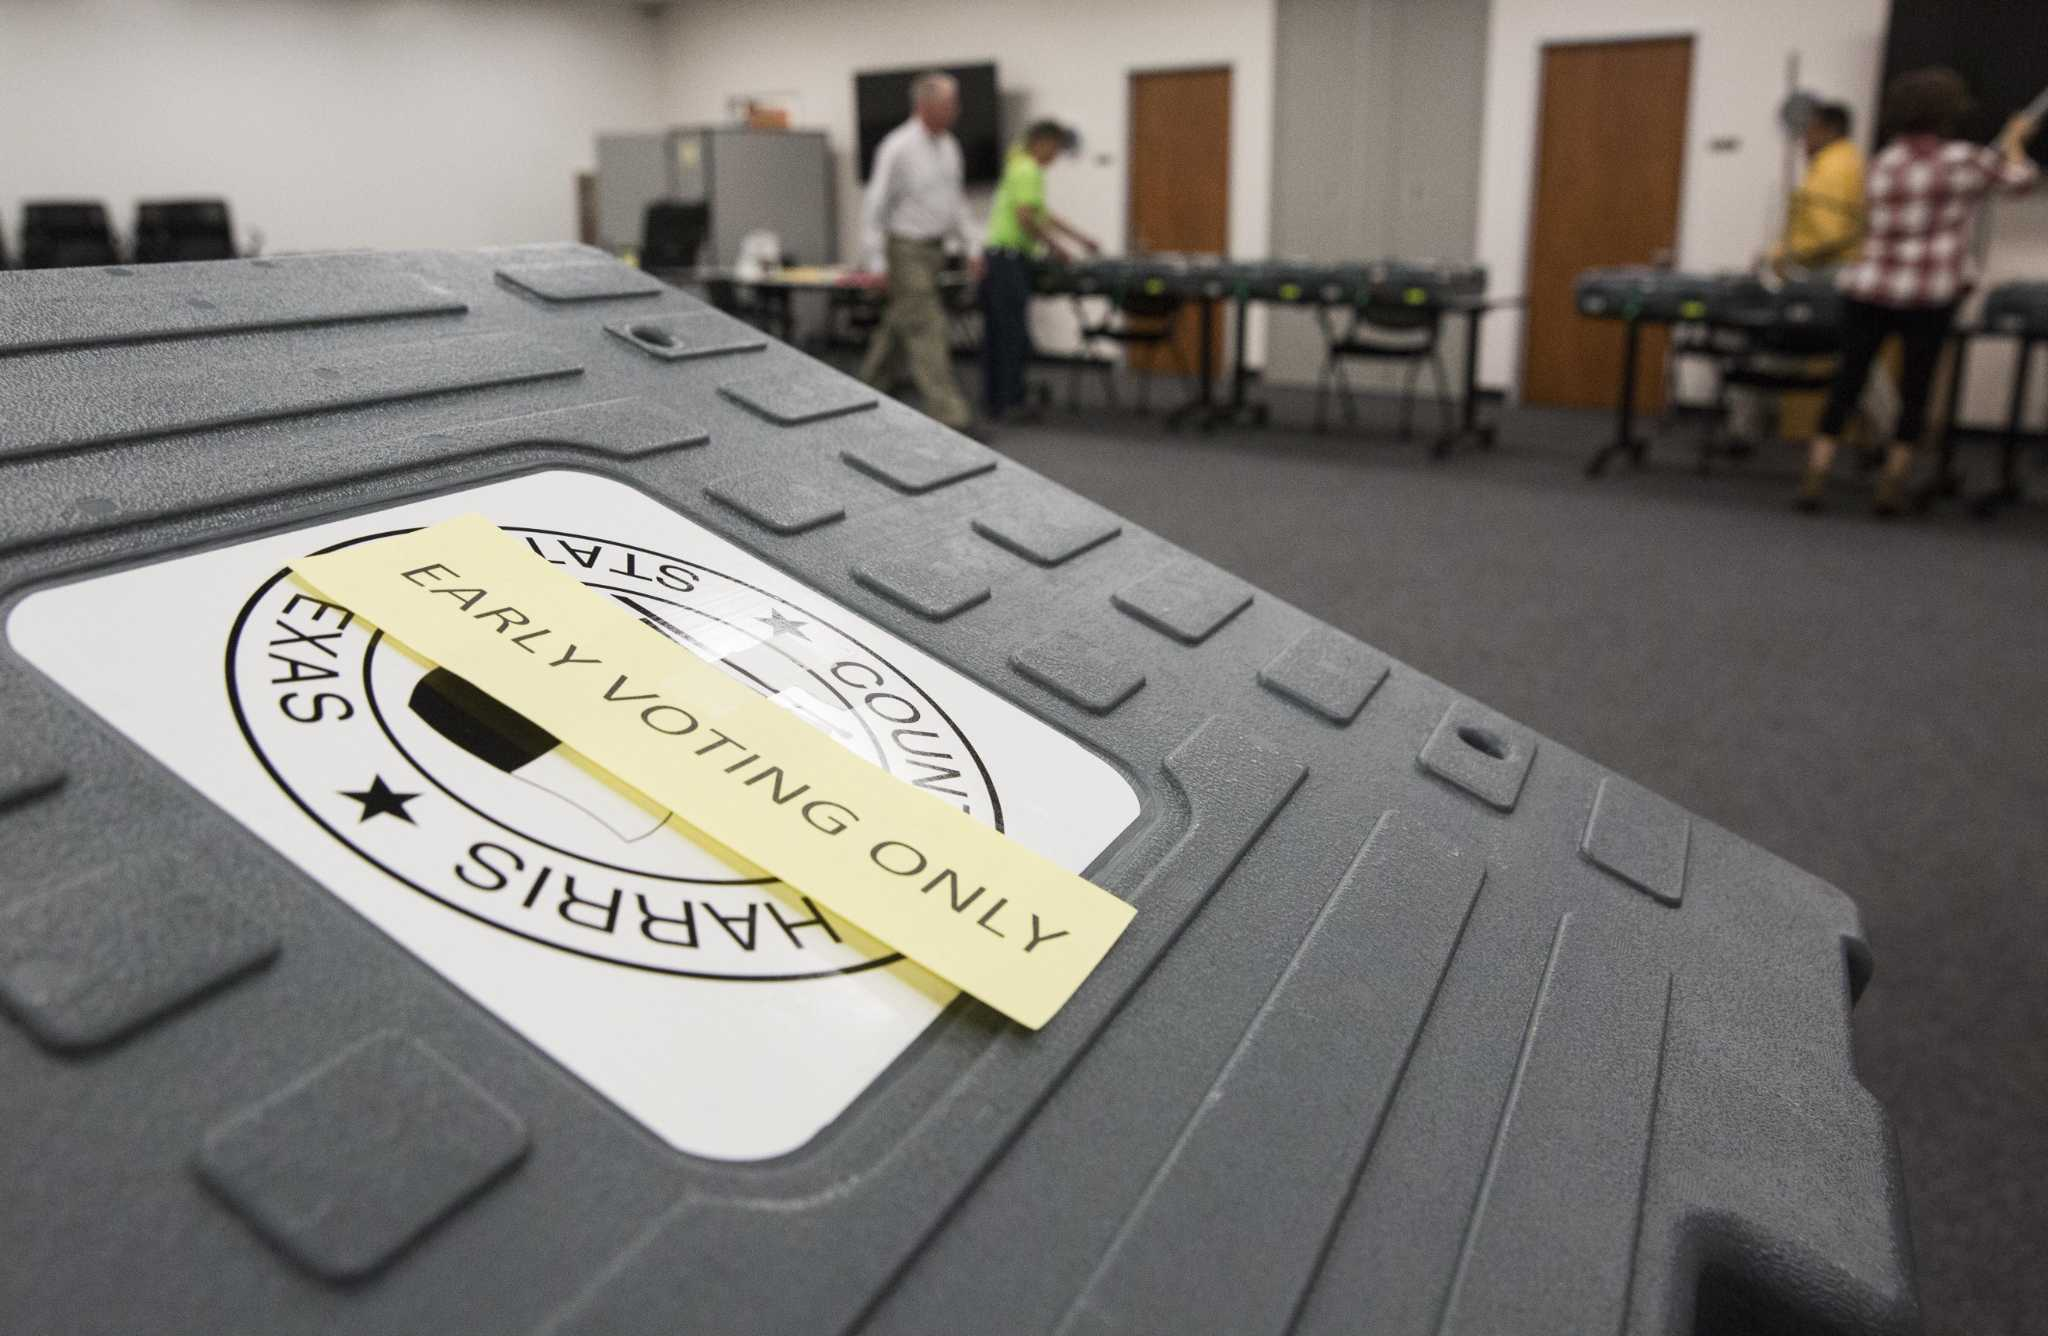 Tuesday is last day to vote early in Houston runoffs